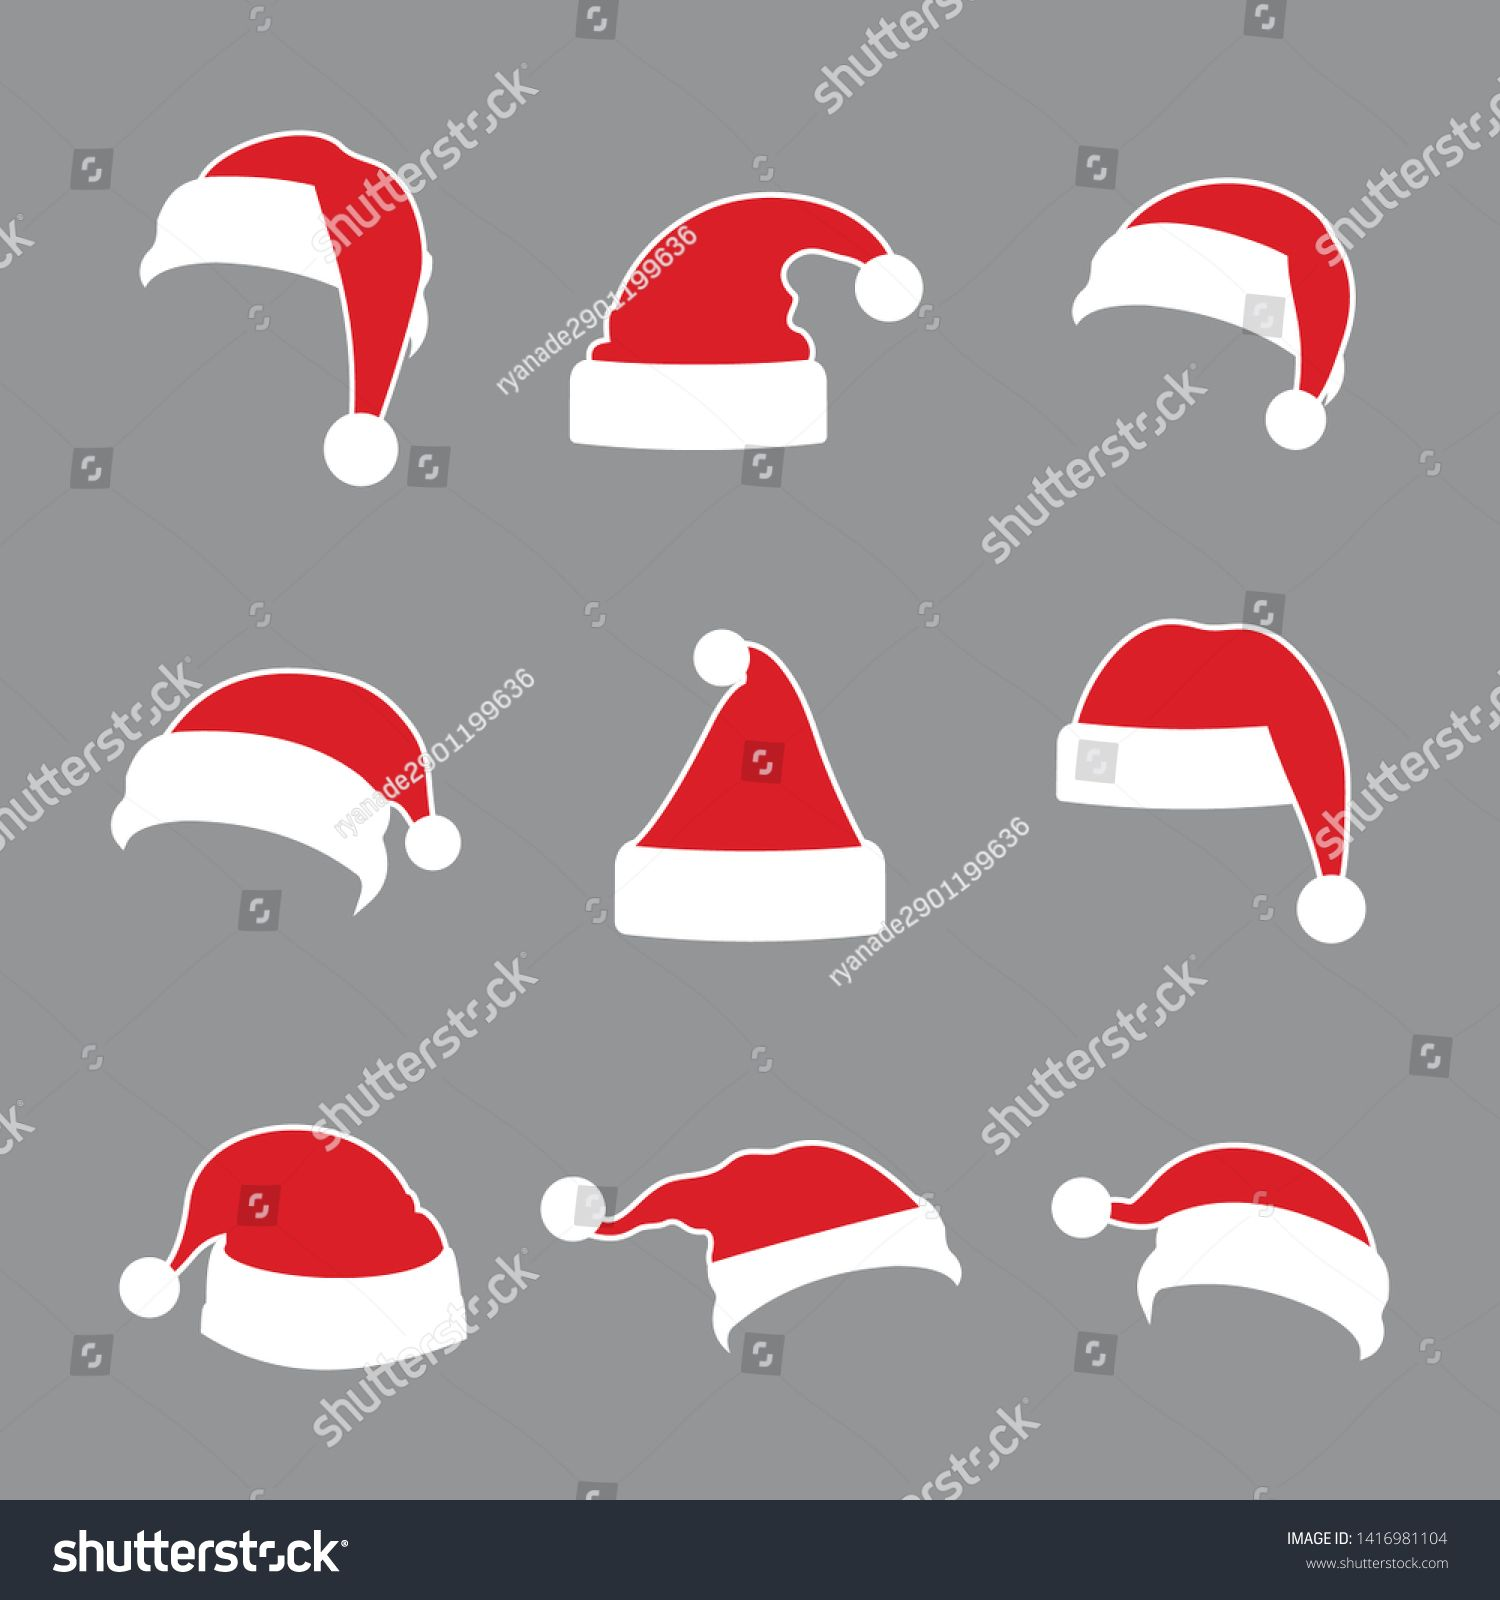 Christmas Santa Claus Hats Collection With White Outline Vector Santa Claus Hat Set Holidays Cap To Santa Claus Hat Santa Hat Illustration Xmas Illustration